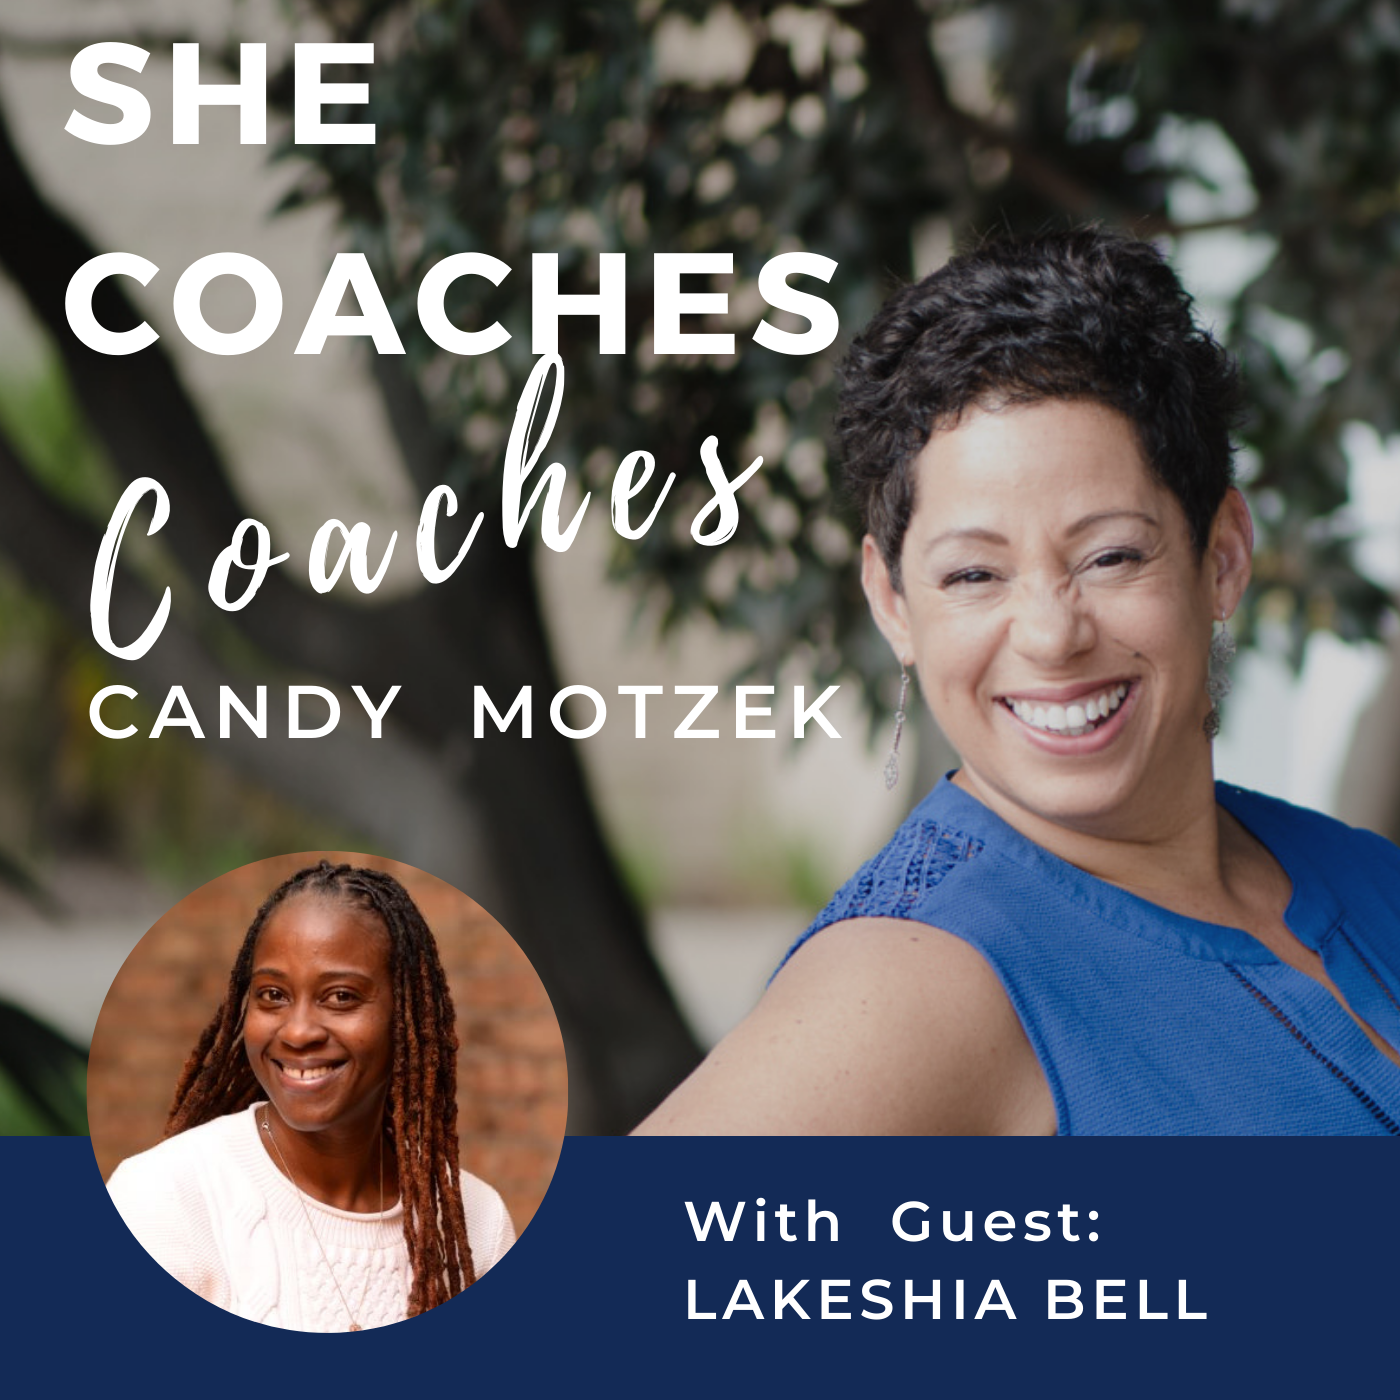 Artwork for podcast She Coaches Coaches